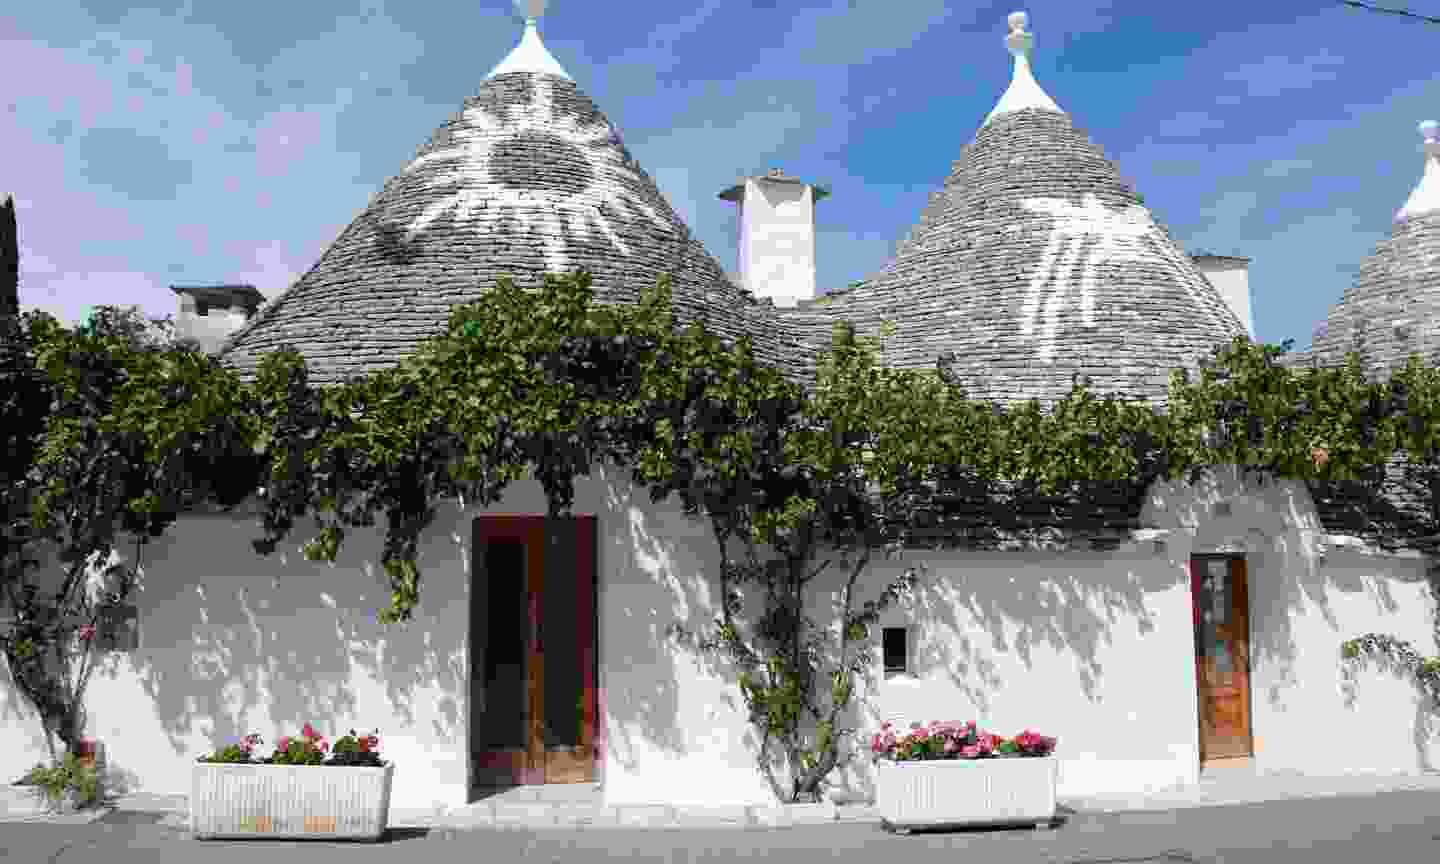 Mysterious symbols on the roof of Trulli buildings in Alberobello (Dreamstime)